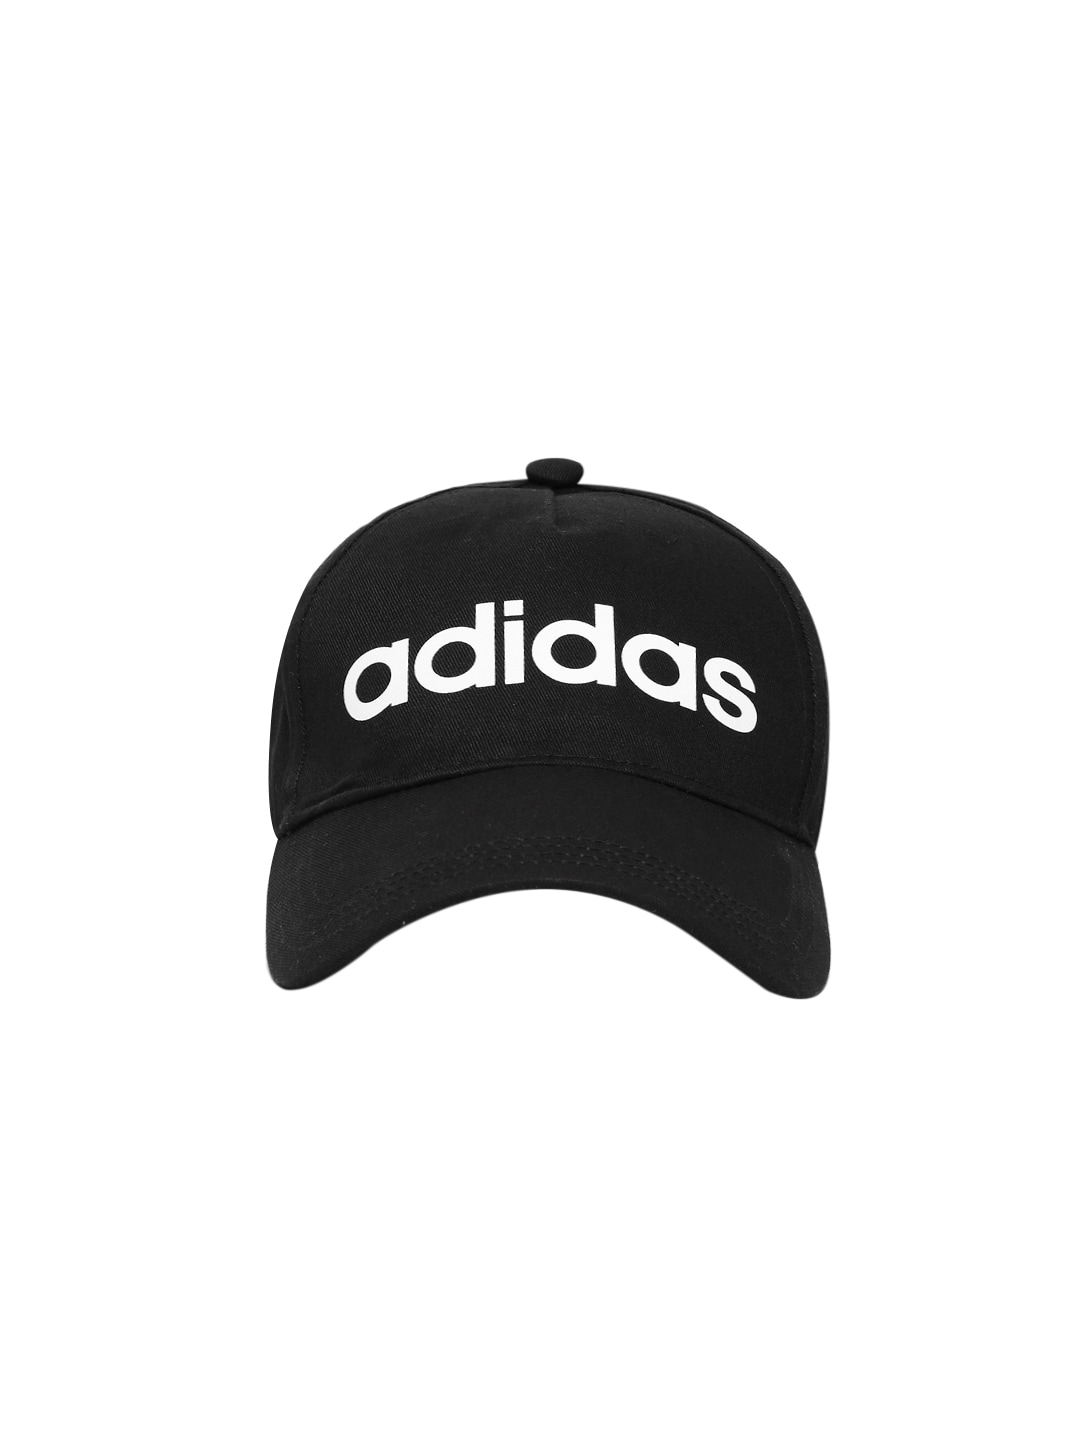 Nike Adidas Caps - Buy Nike Adidas Caps online in India a0b48d1ba641